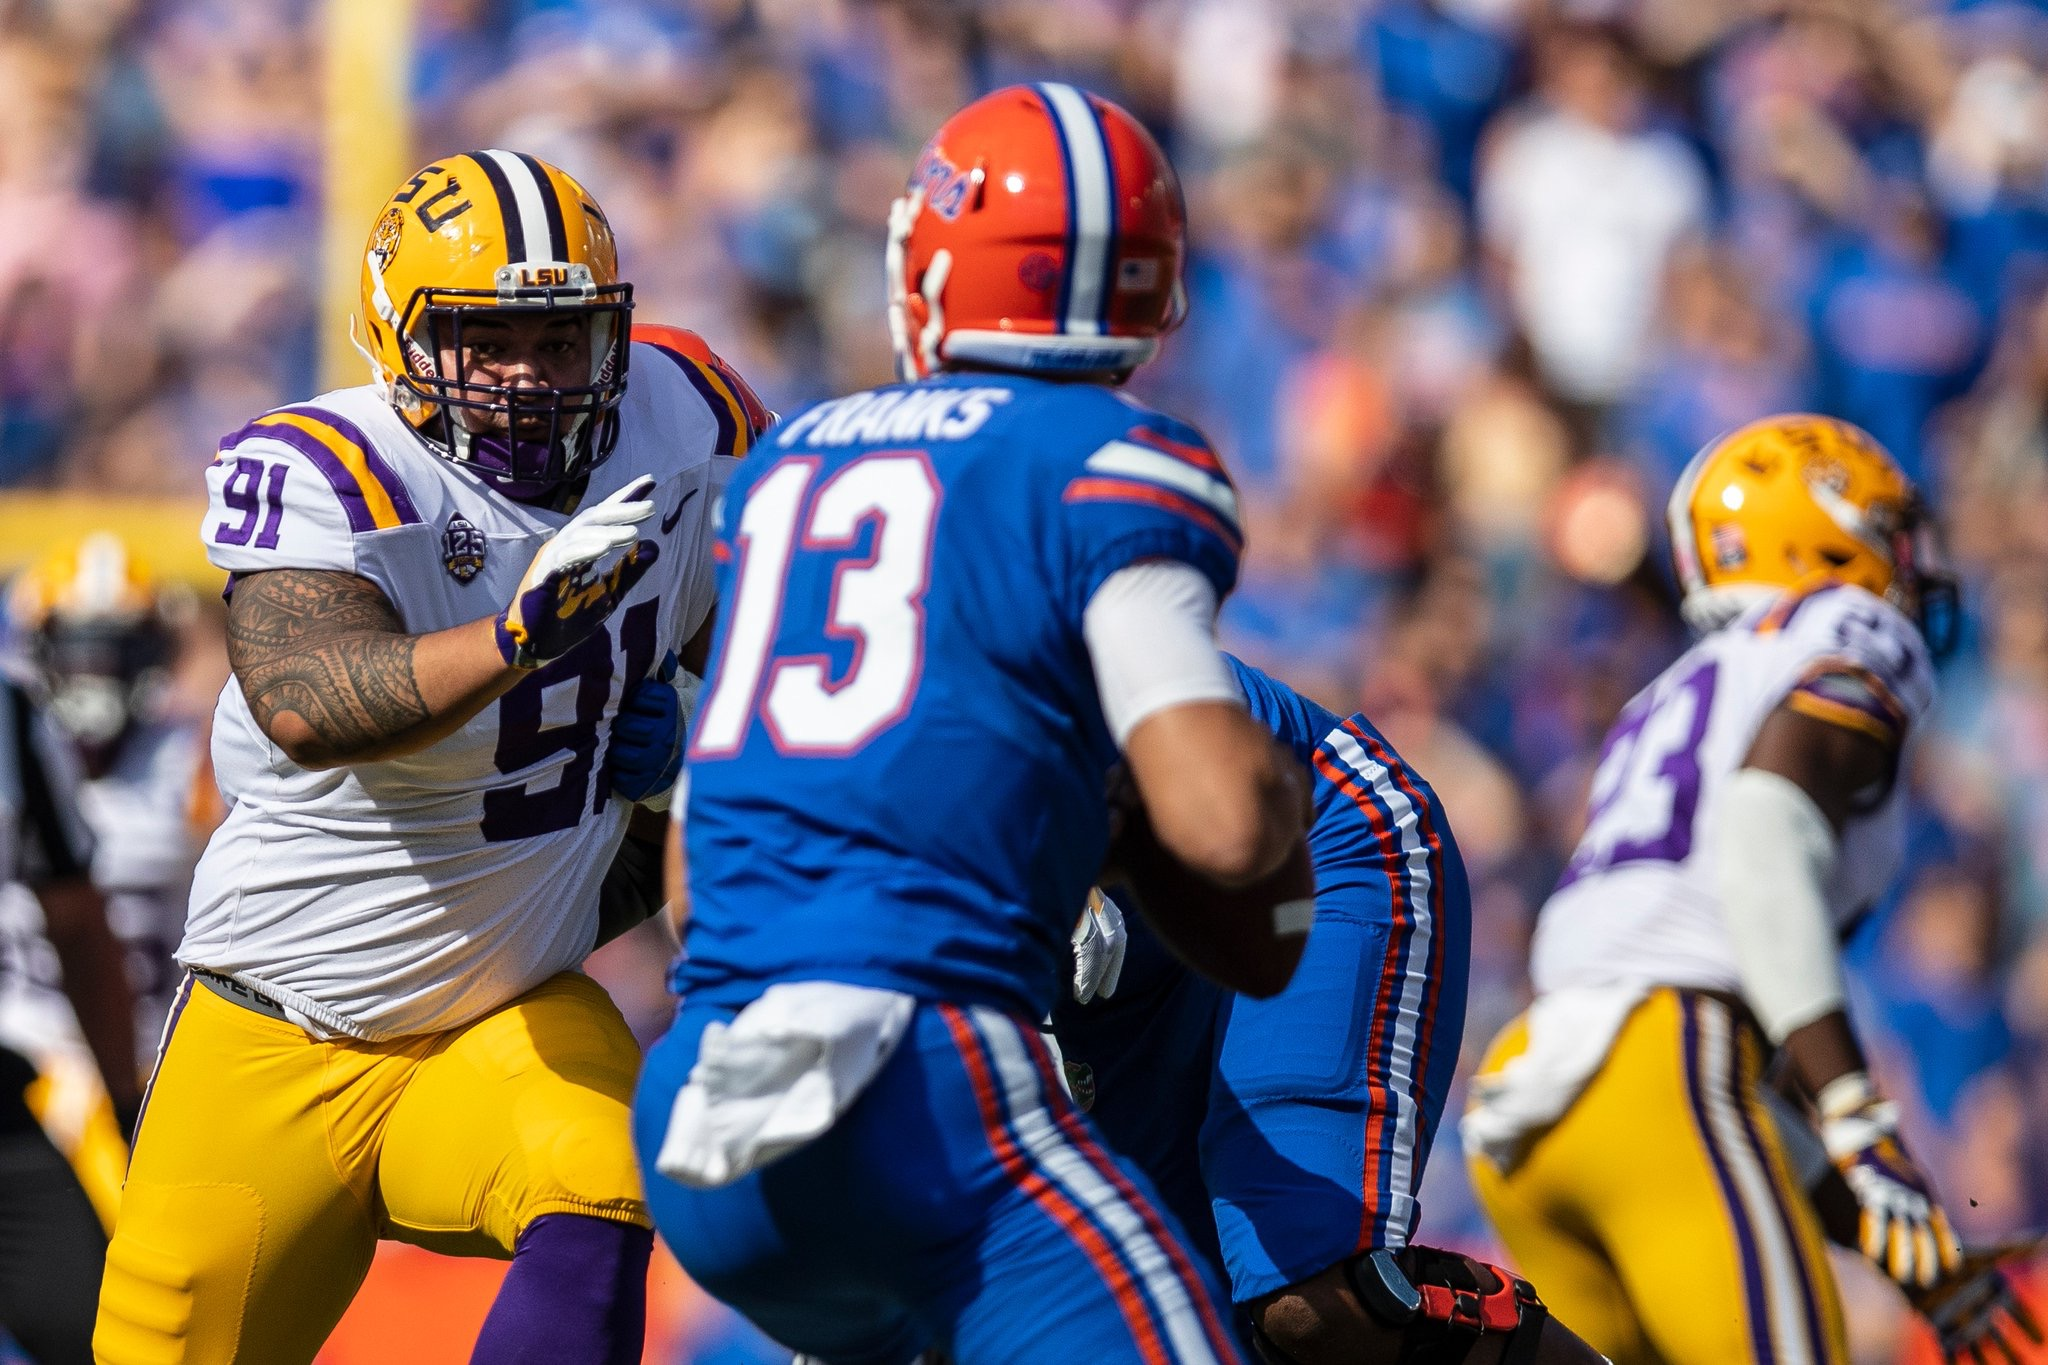 LSU looking for season-defining win vs. Georgia